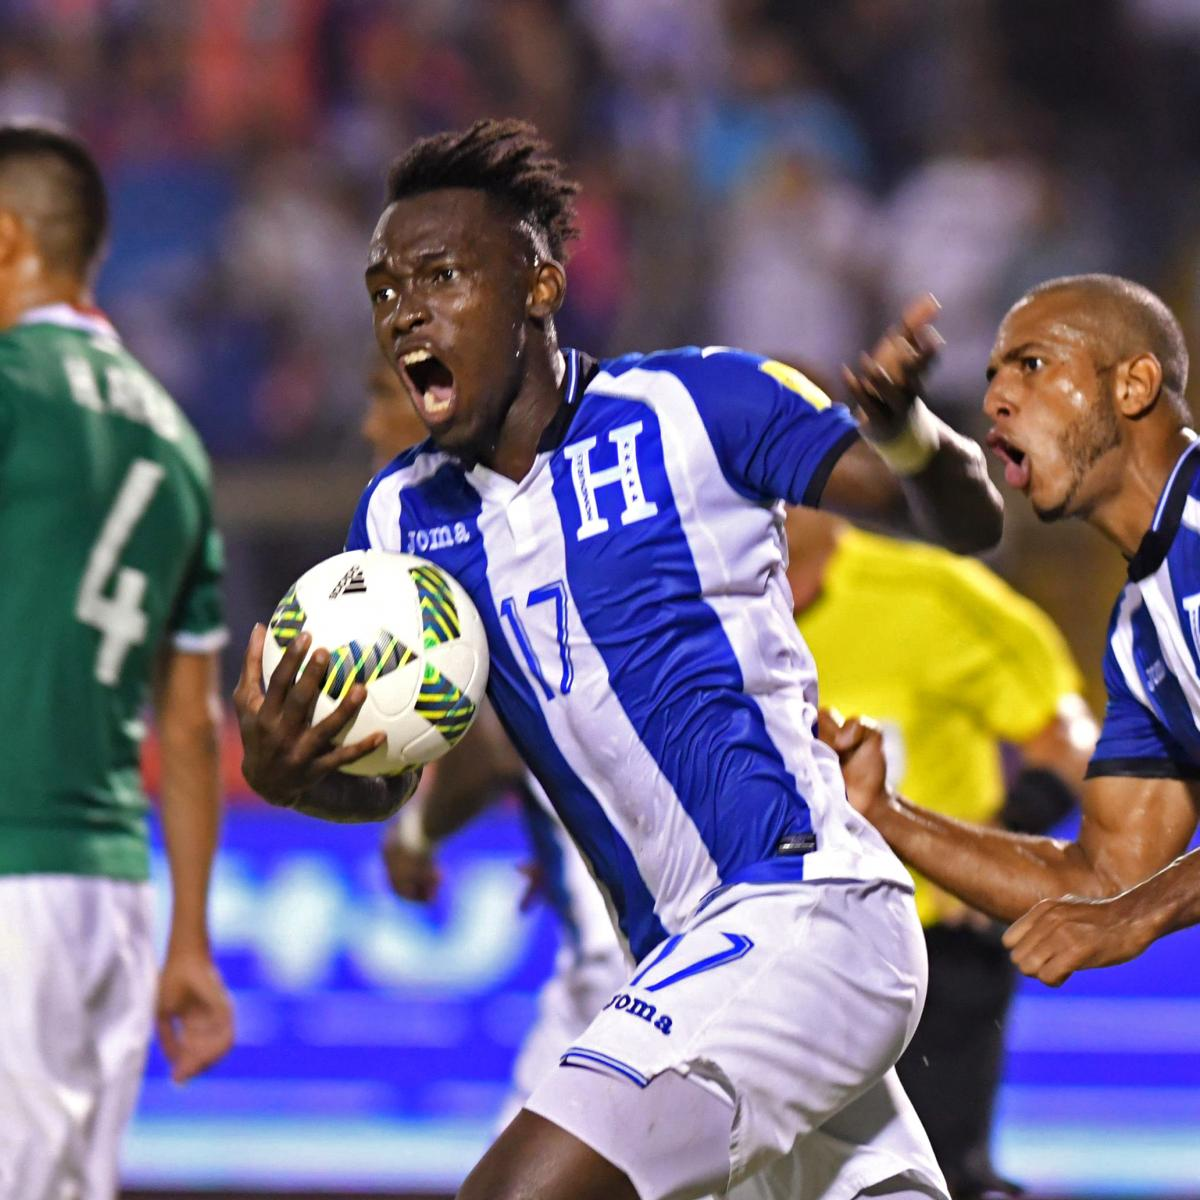 Honduras Defeats Mexico to Qualify for 2018 World Cup Playoff vs. Australia